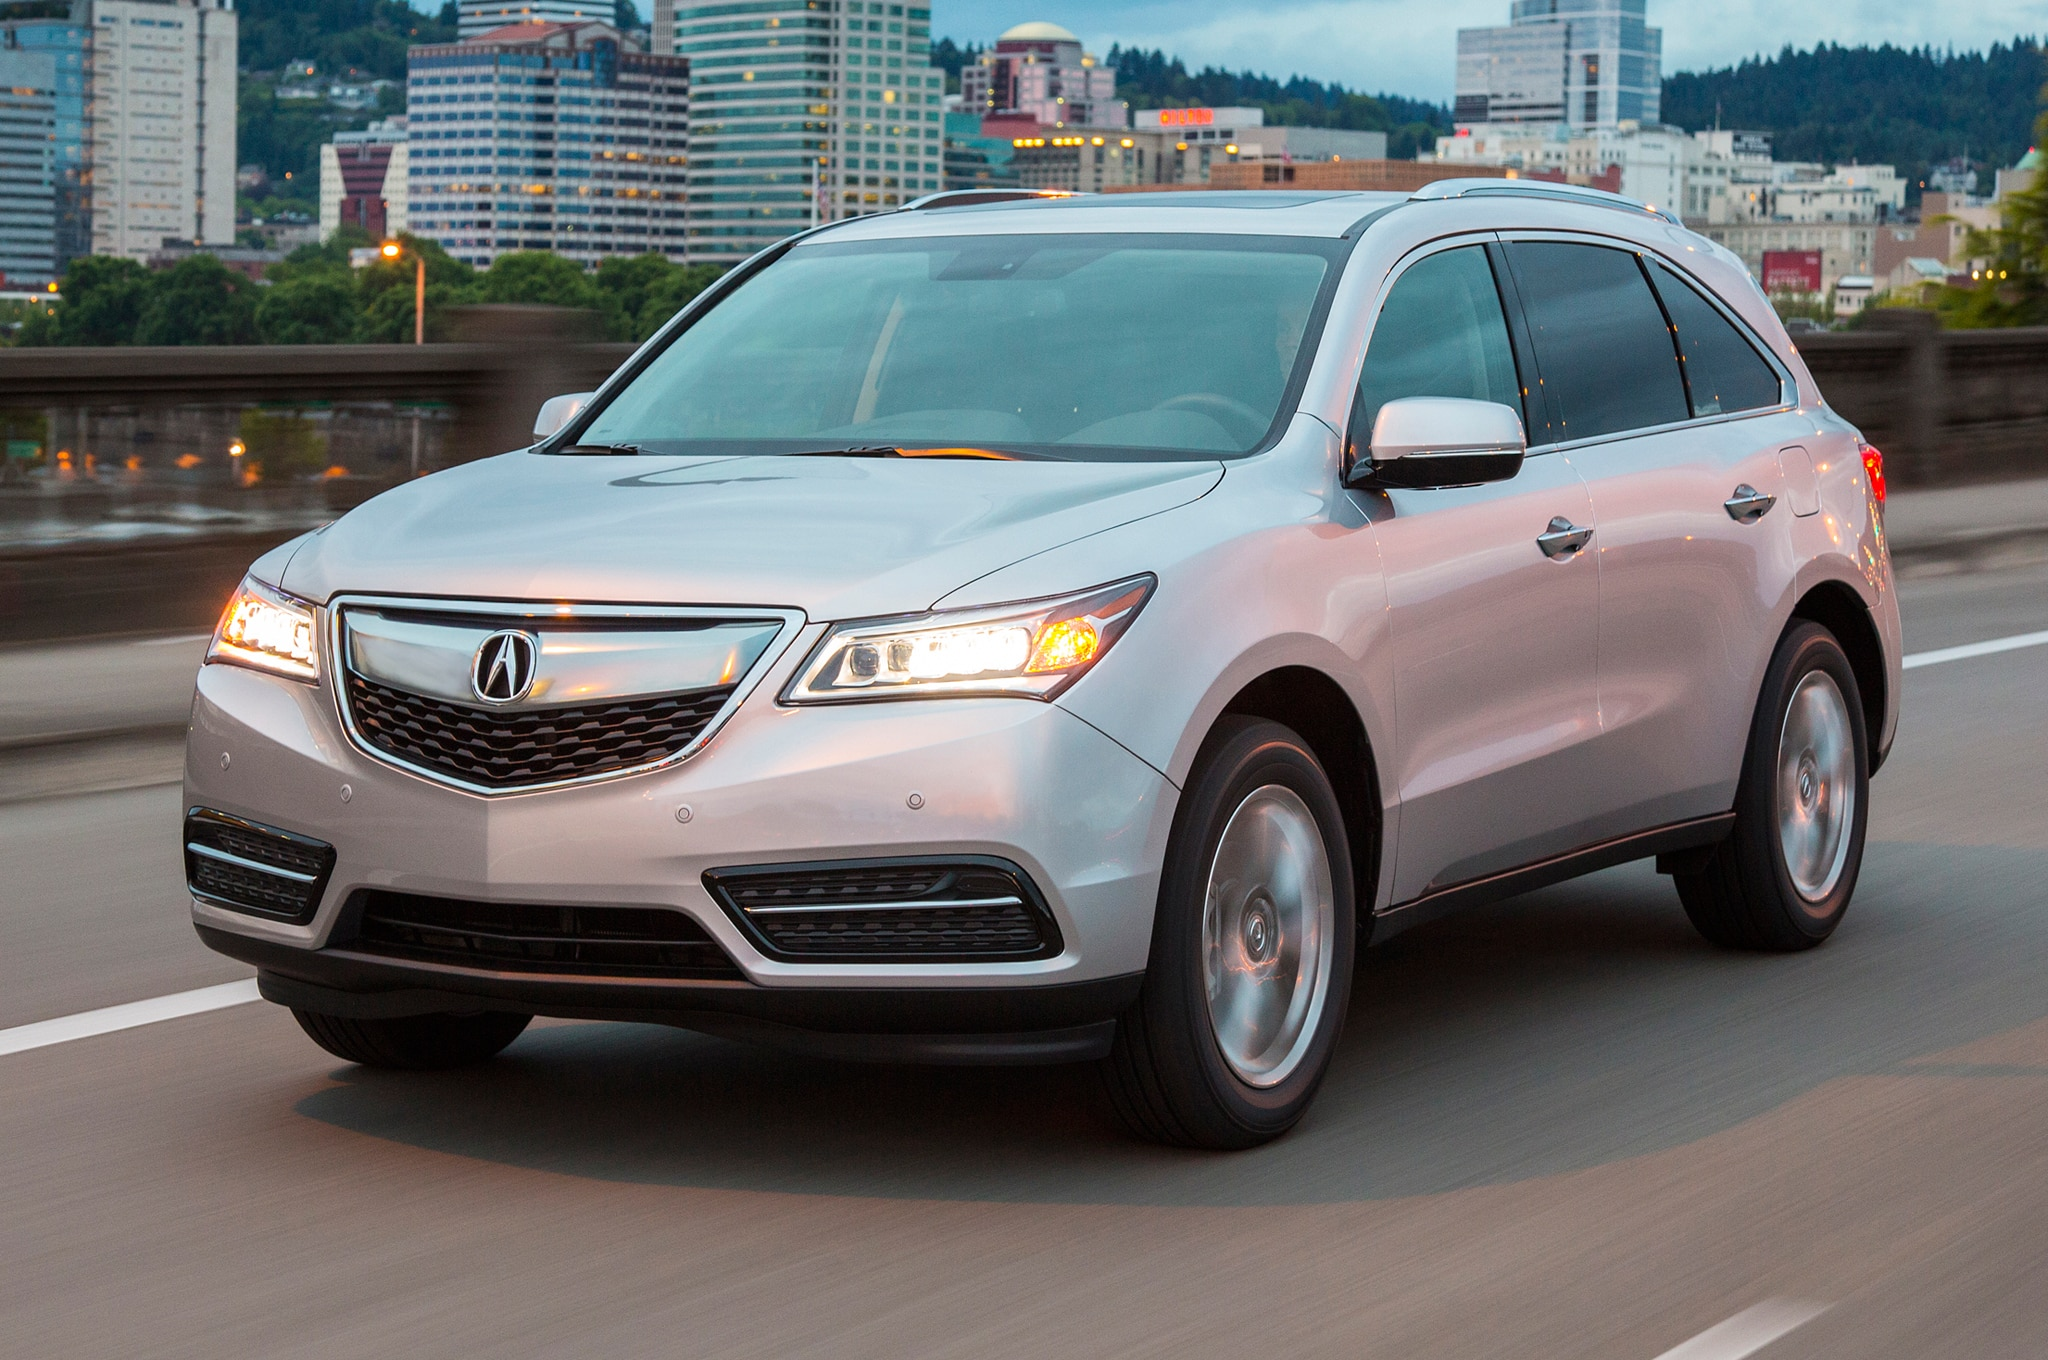 medium resolution of 2016 acura mdx updated with nine speed automatic new tech features pin 2002 acura mdx engine diagram on pinterest